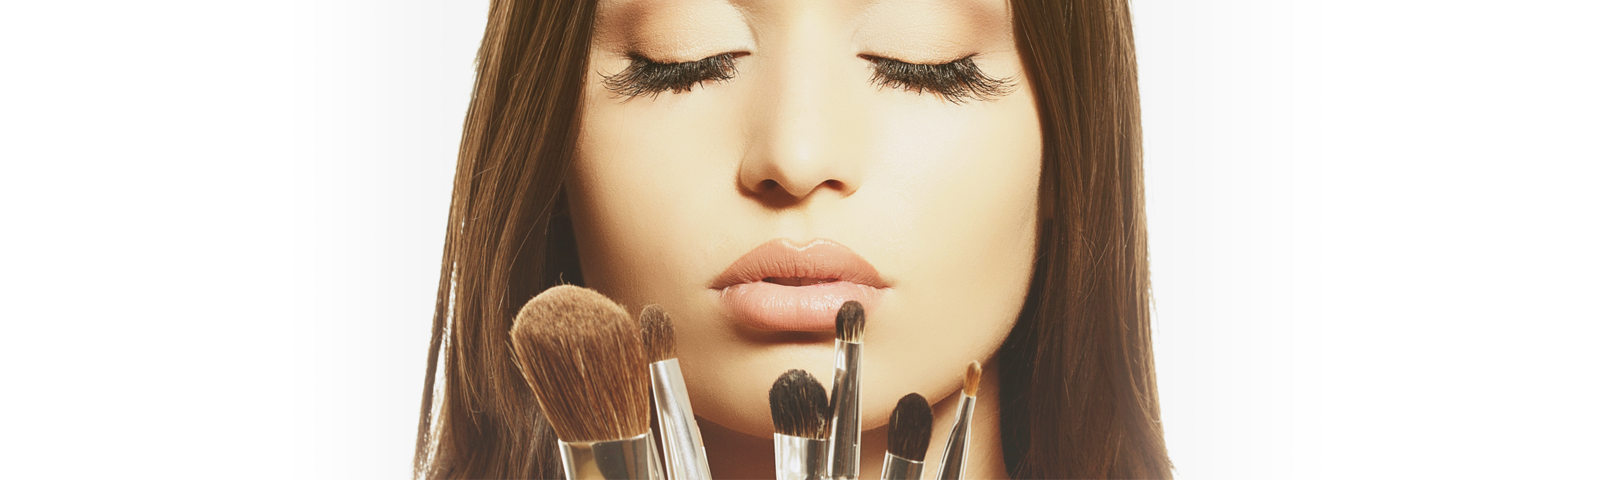 Top 5 Makeup Brushes Every Woman Should Own (And How To Use Them)